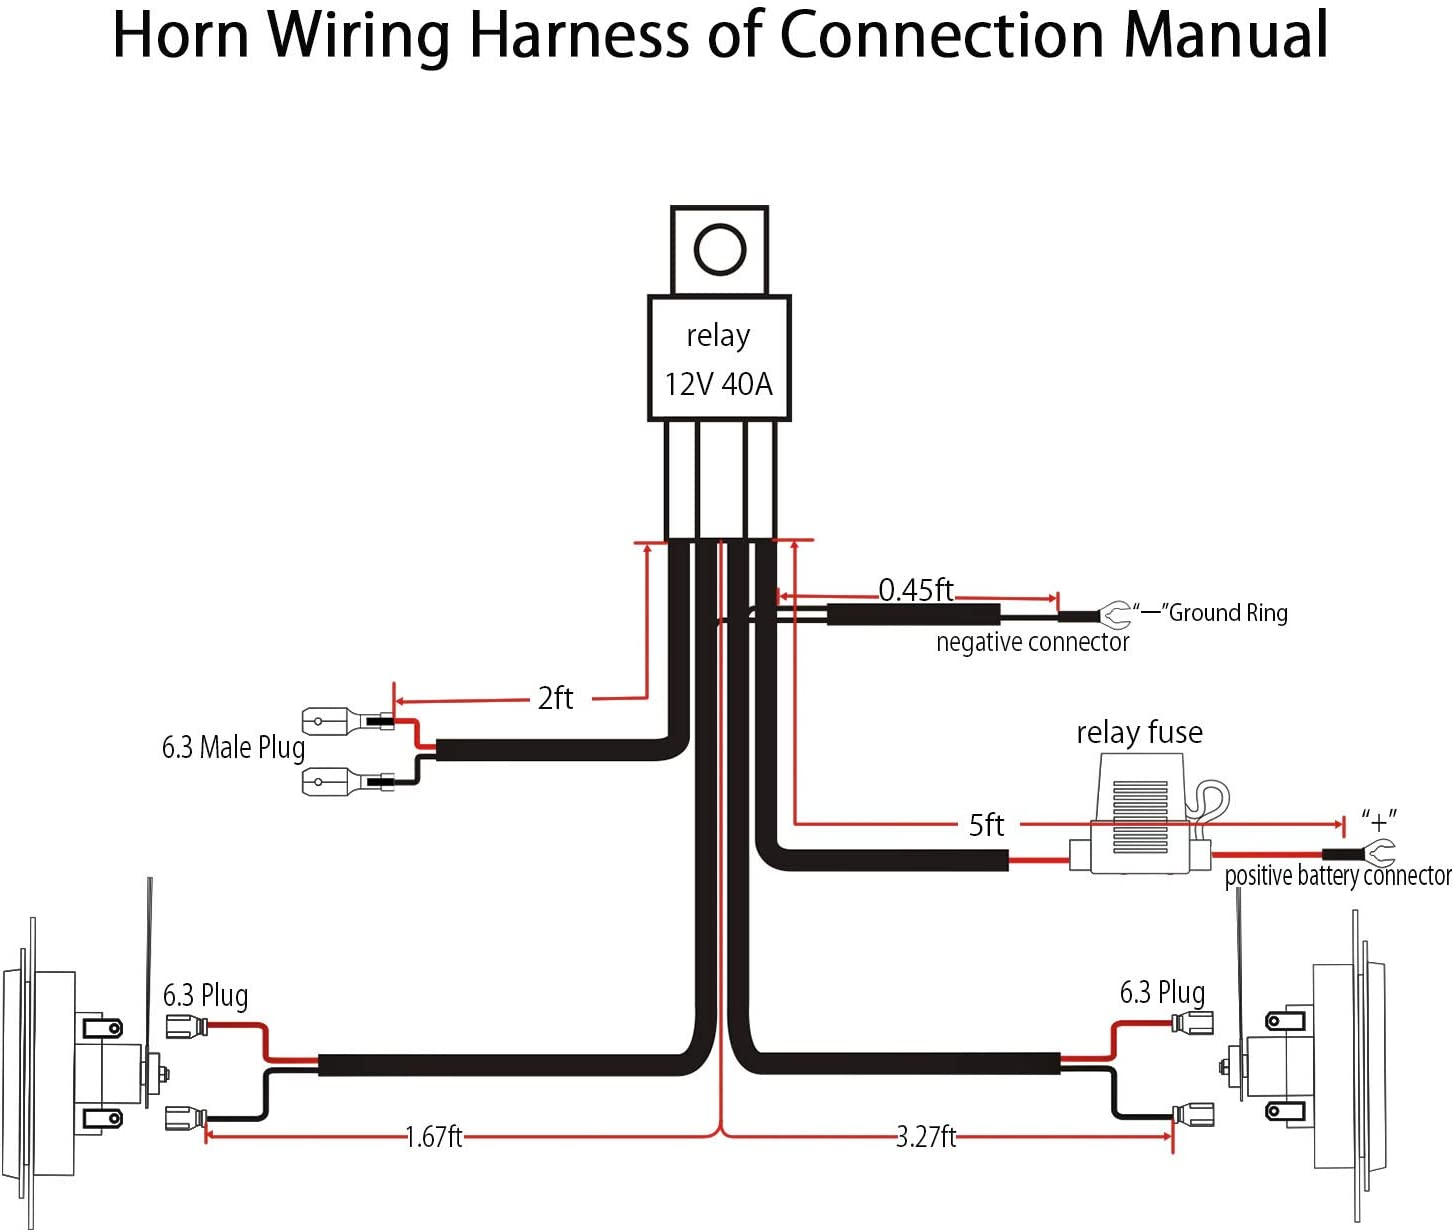 wolo horn wiring diagram amazon com jhe horn wiring harness kits for car truck grille  jhe horn wiring harness kits for car